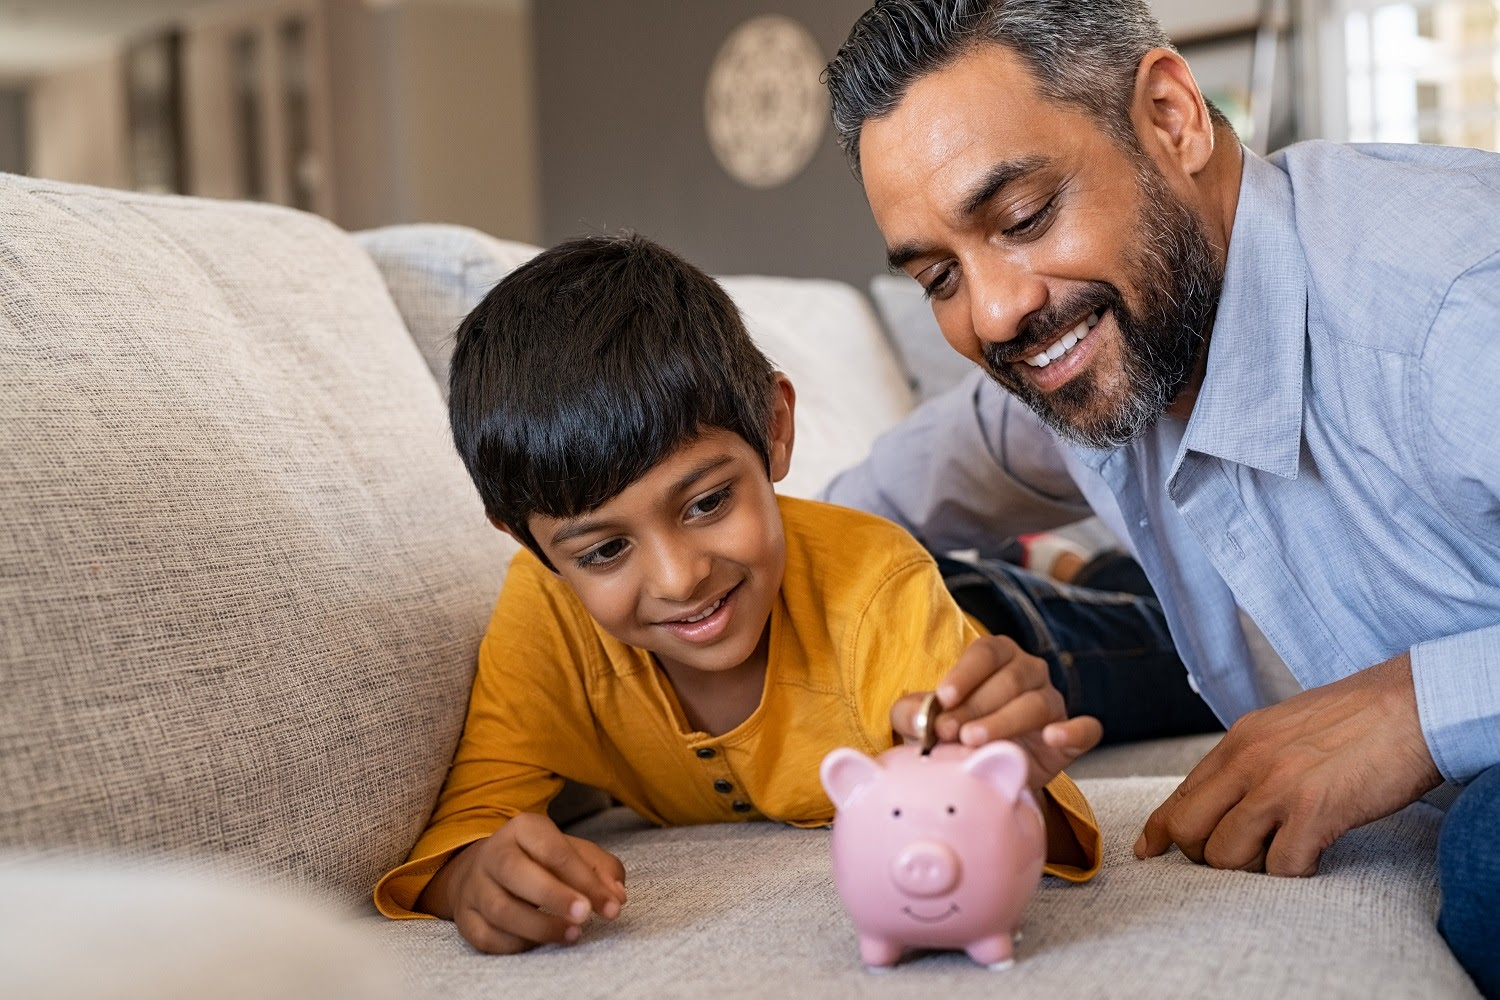 How to use your tax refund wisely: A man and his son put change in a piggy bank